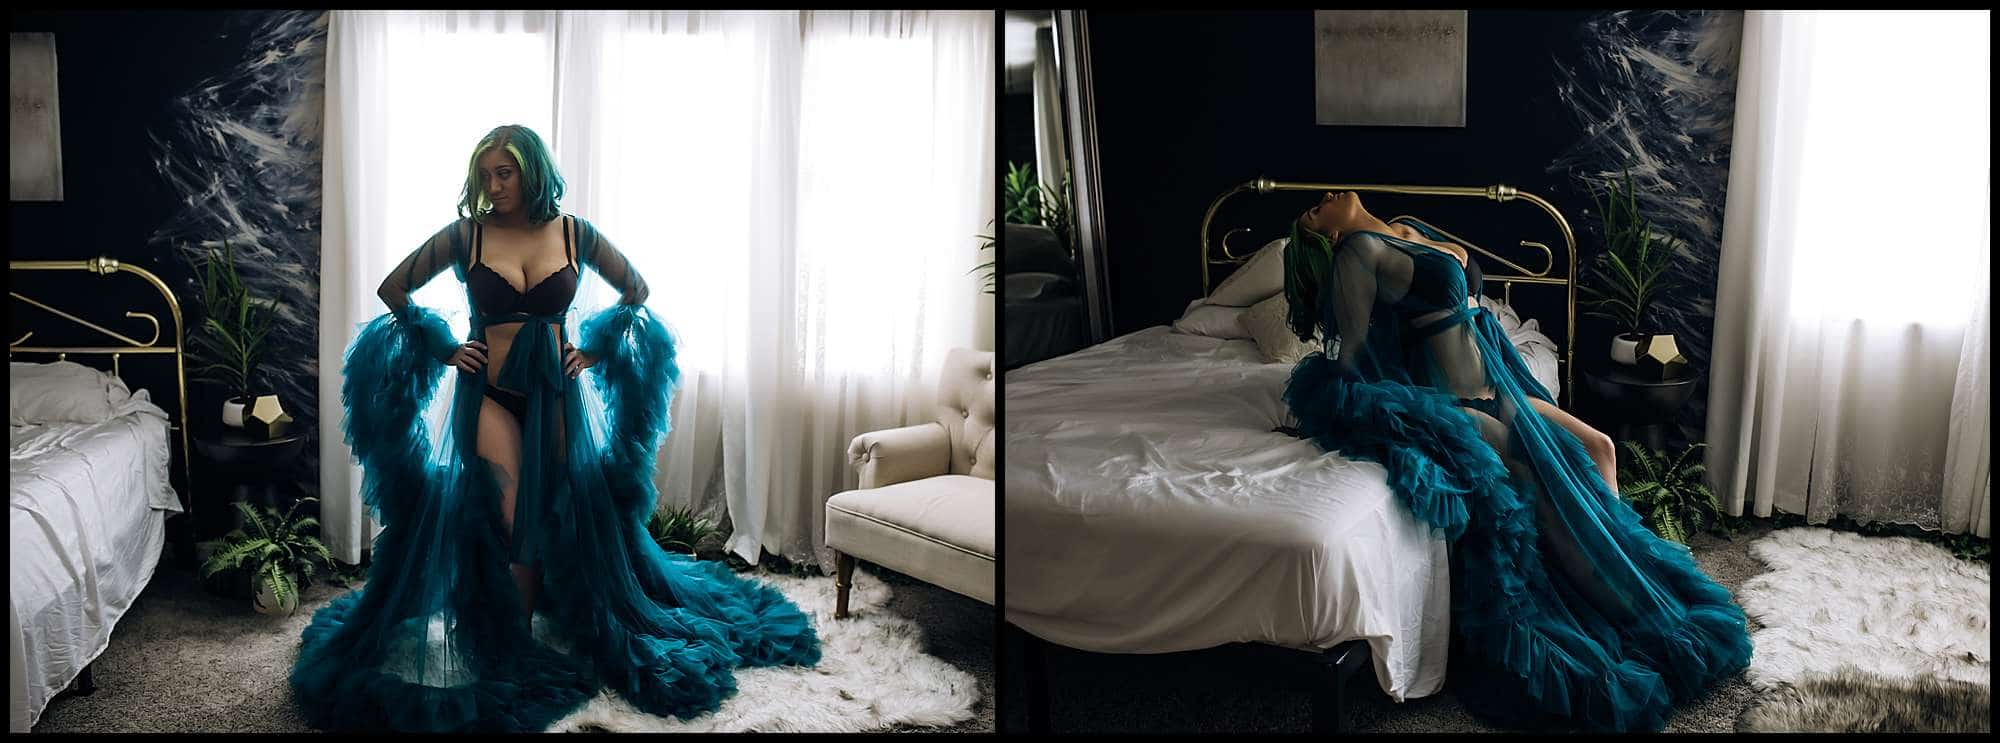 Luxe Teal Robe Blog_0185